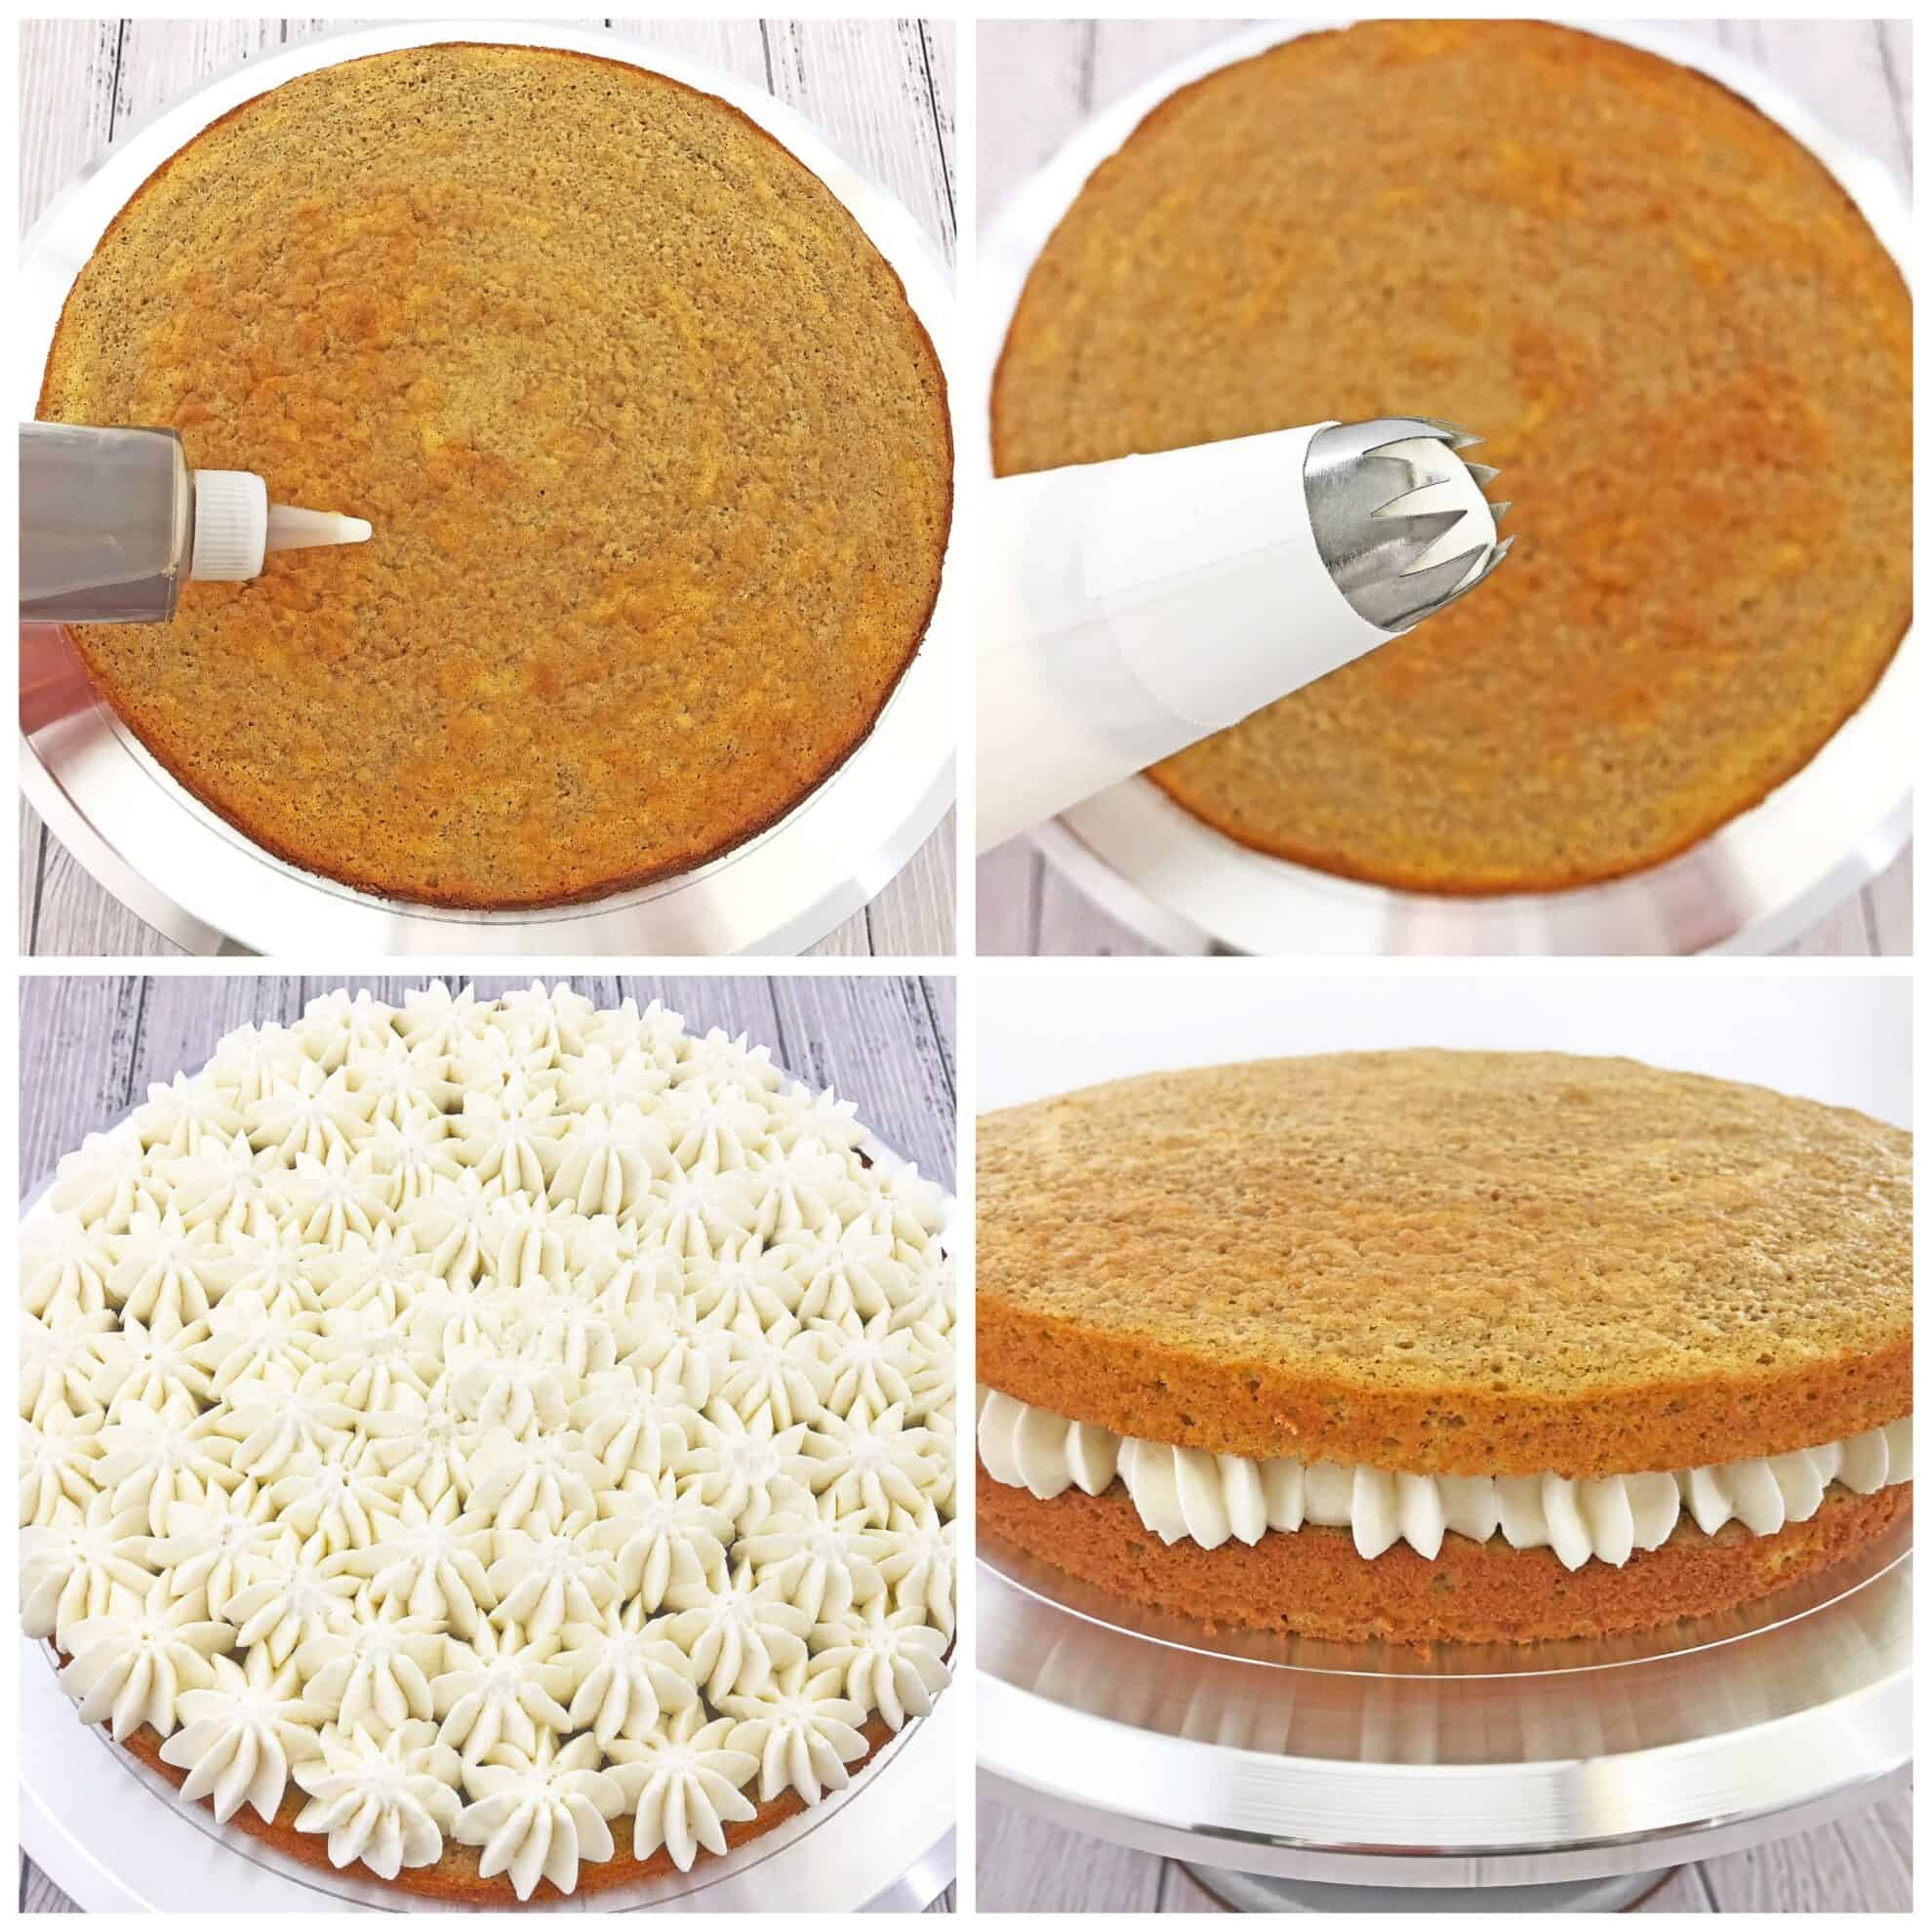 This Pumpkin Tiramisu Cake Recipe is the perfect segue into the colorful Fall season and all its delicious flavors! It is not overly sweet but is very fluffy, moist and delicious. #pumpkintiramisucake #fallbaking #easycakerecipe #valyastasteofhome